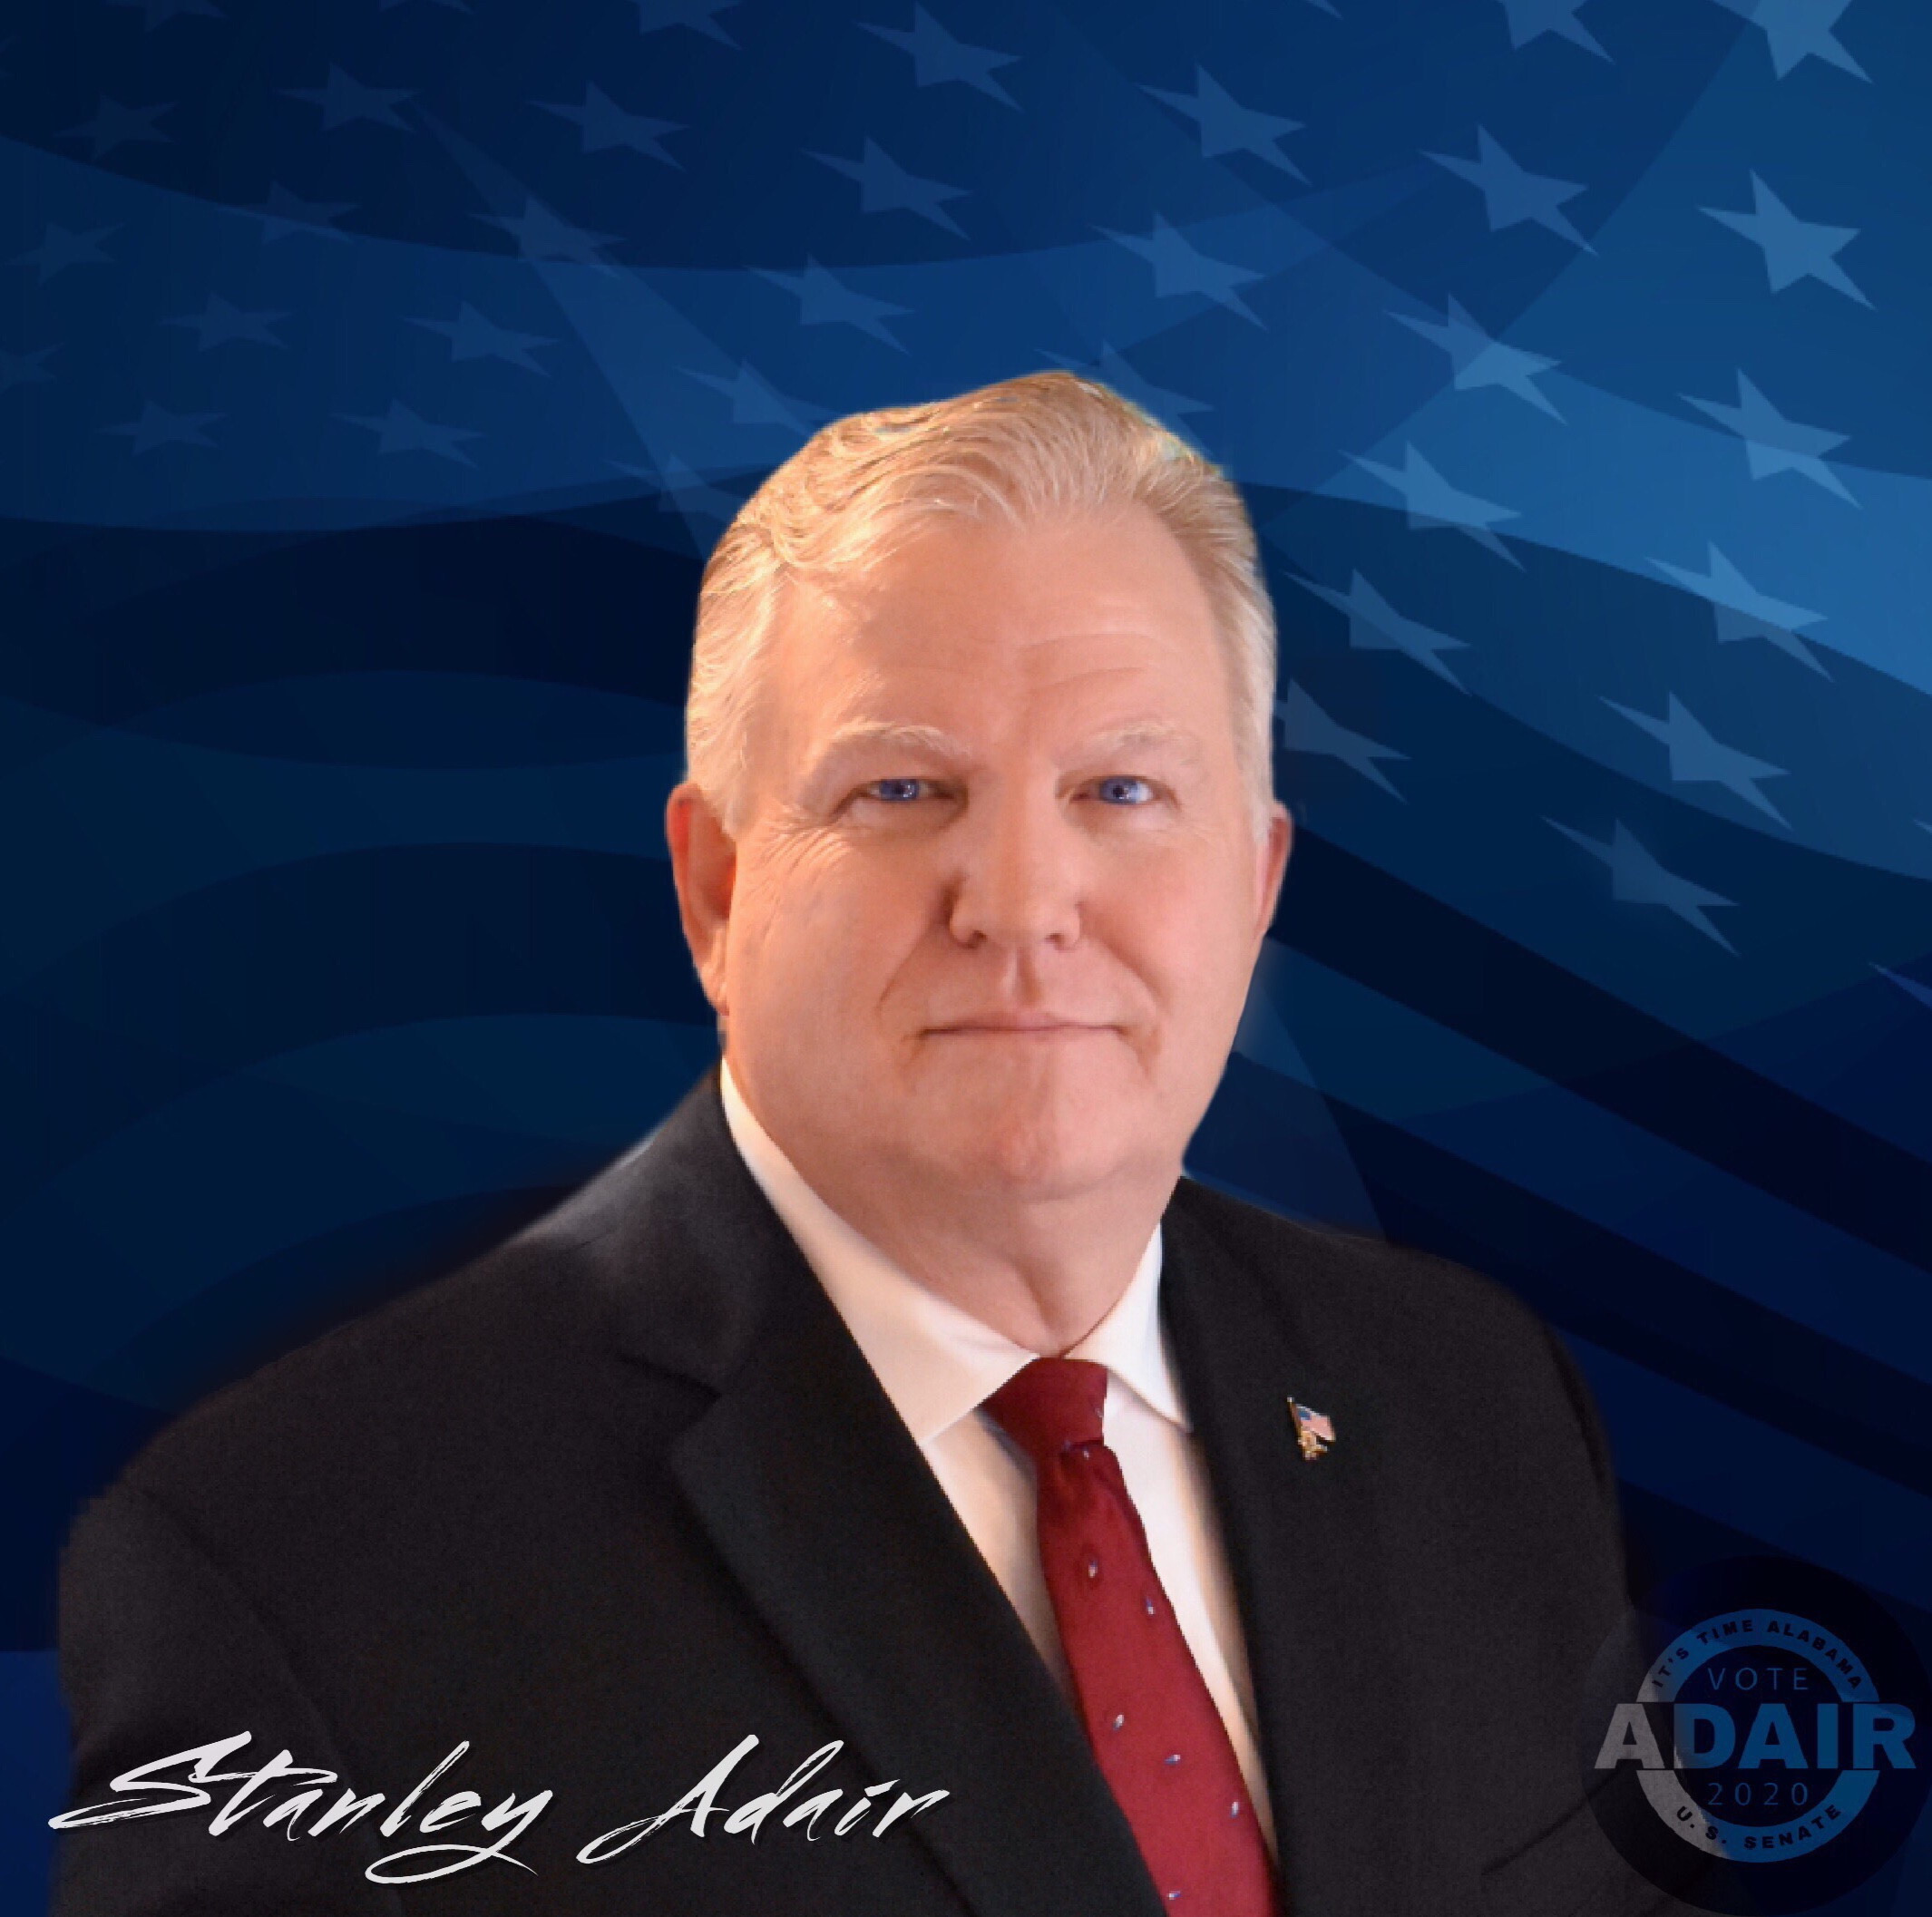 About - With God and hard work this life long Republican will take the State of Alabama by storm.